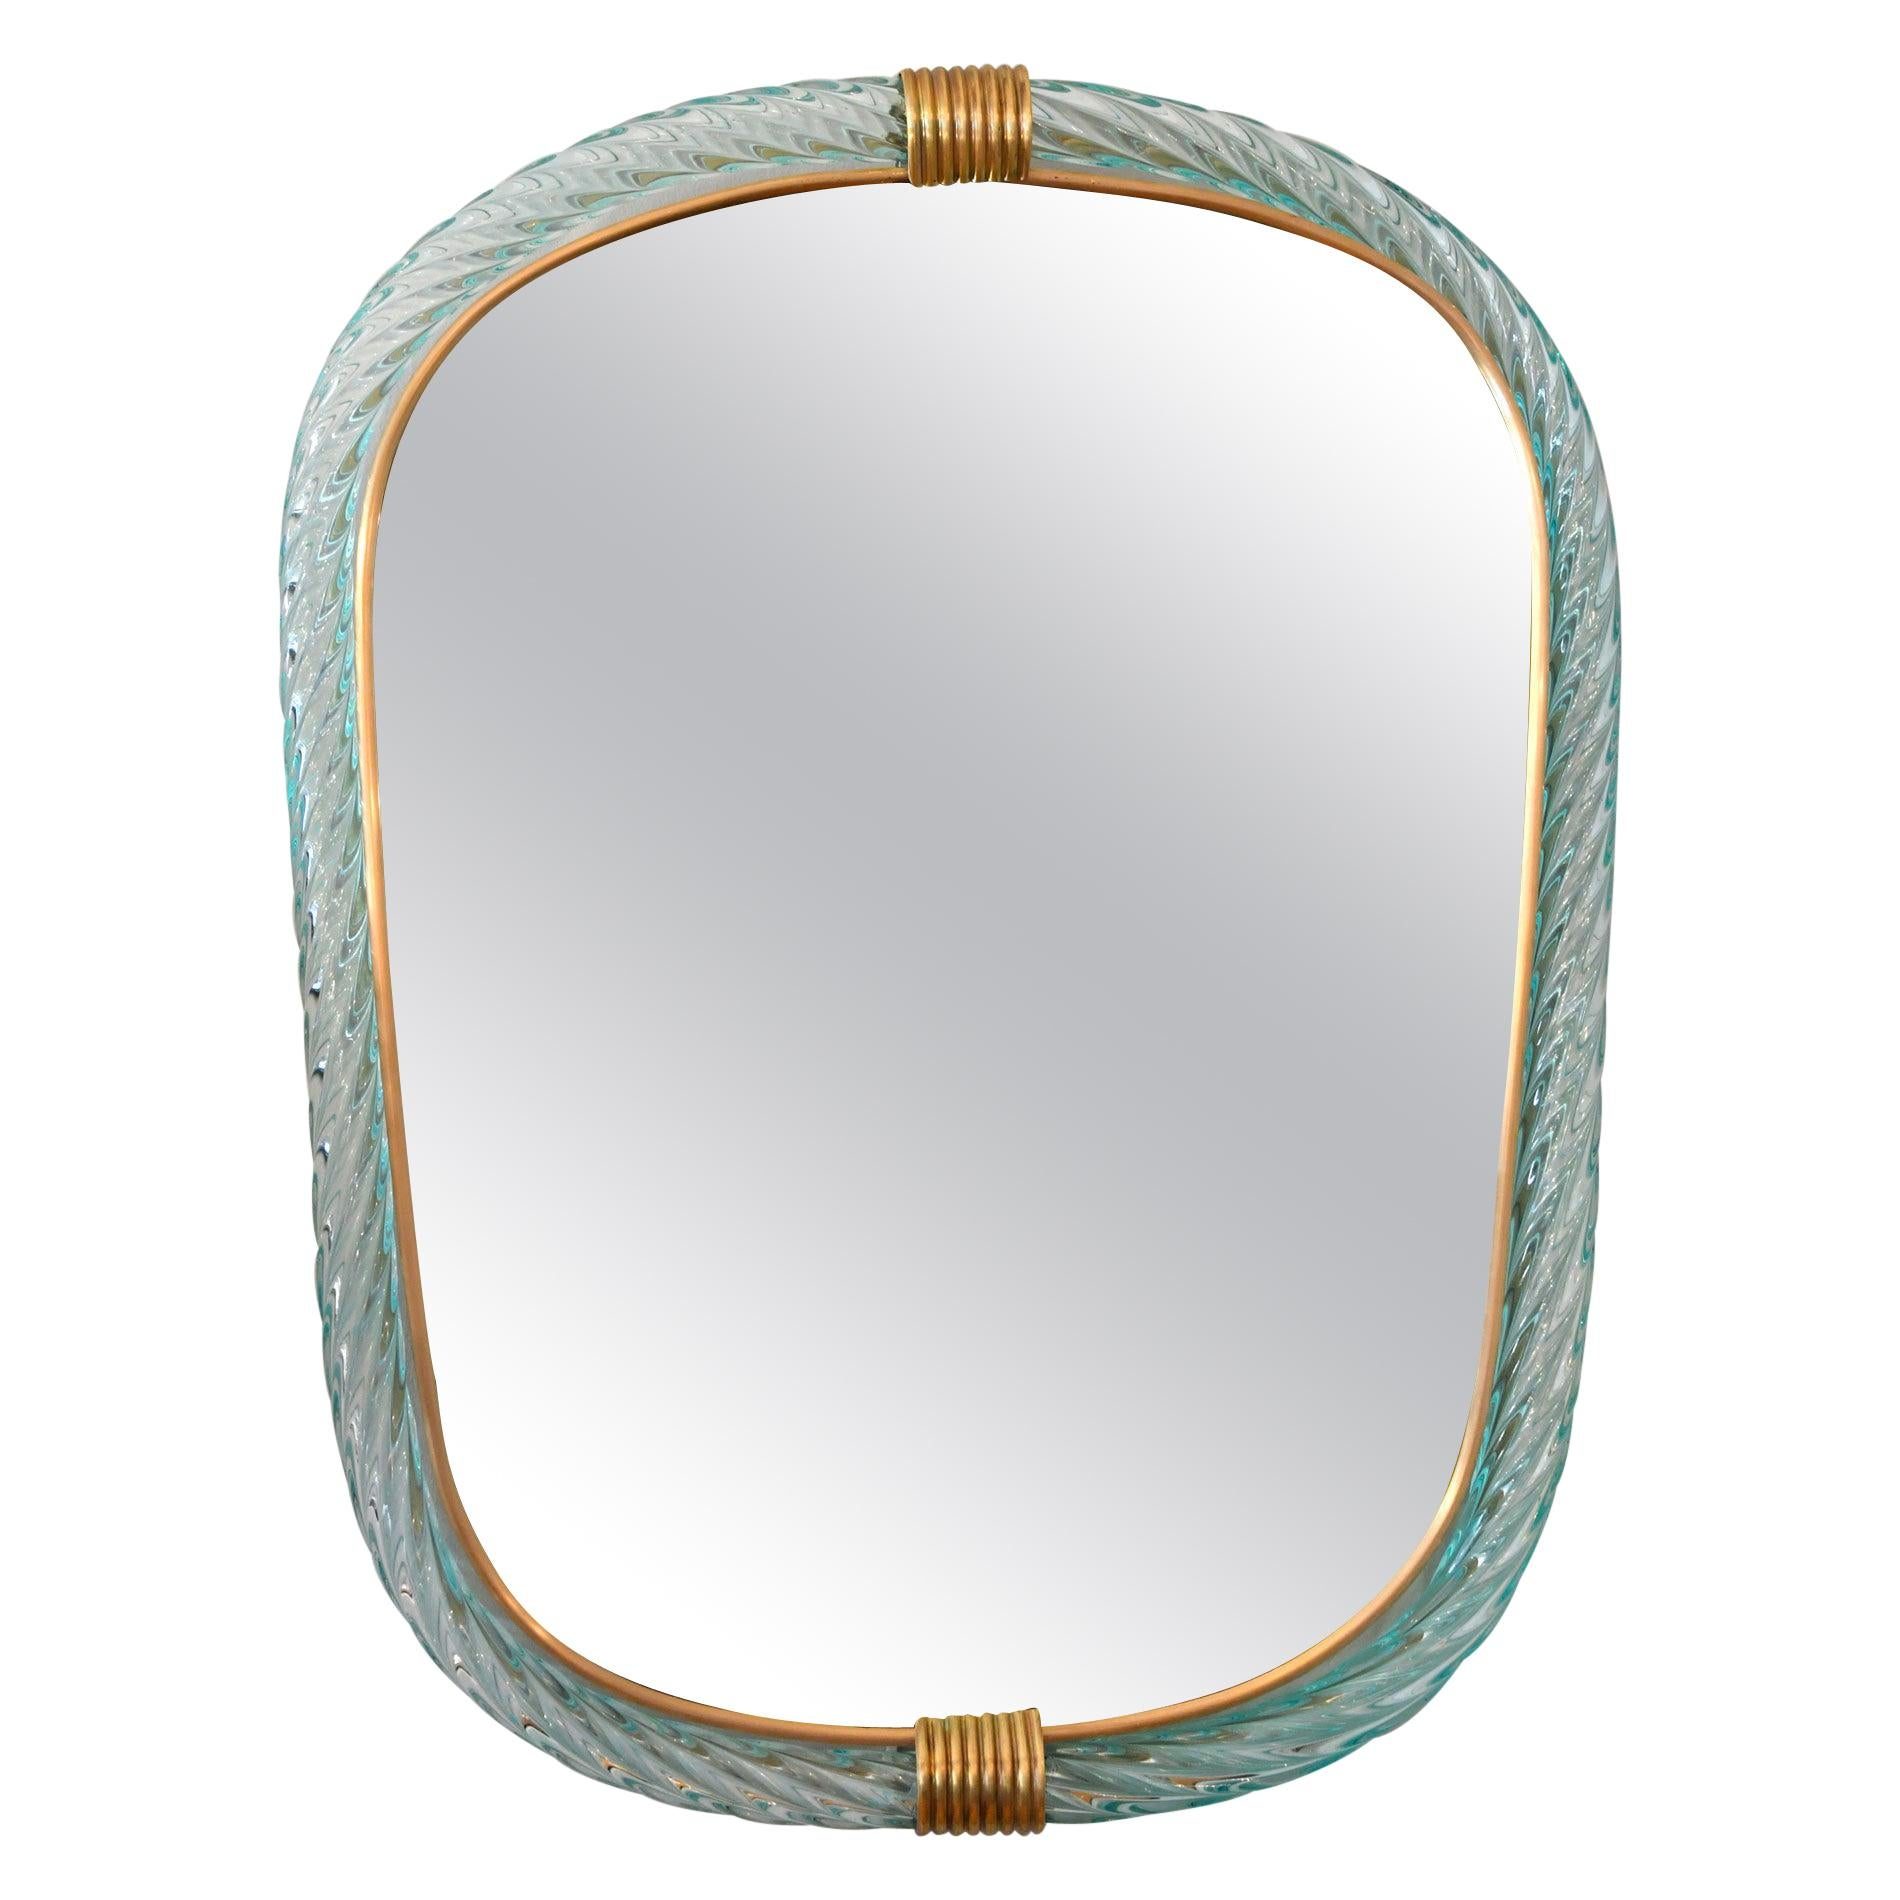 Pale Green Portrait Murano Twisted Rope 'Firenze' Mirror in the Style of Barovie